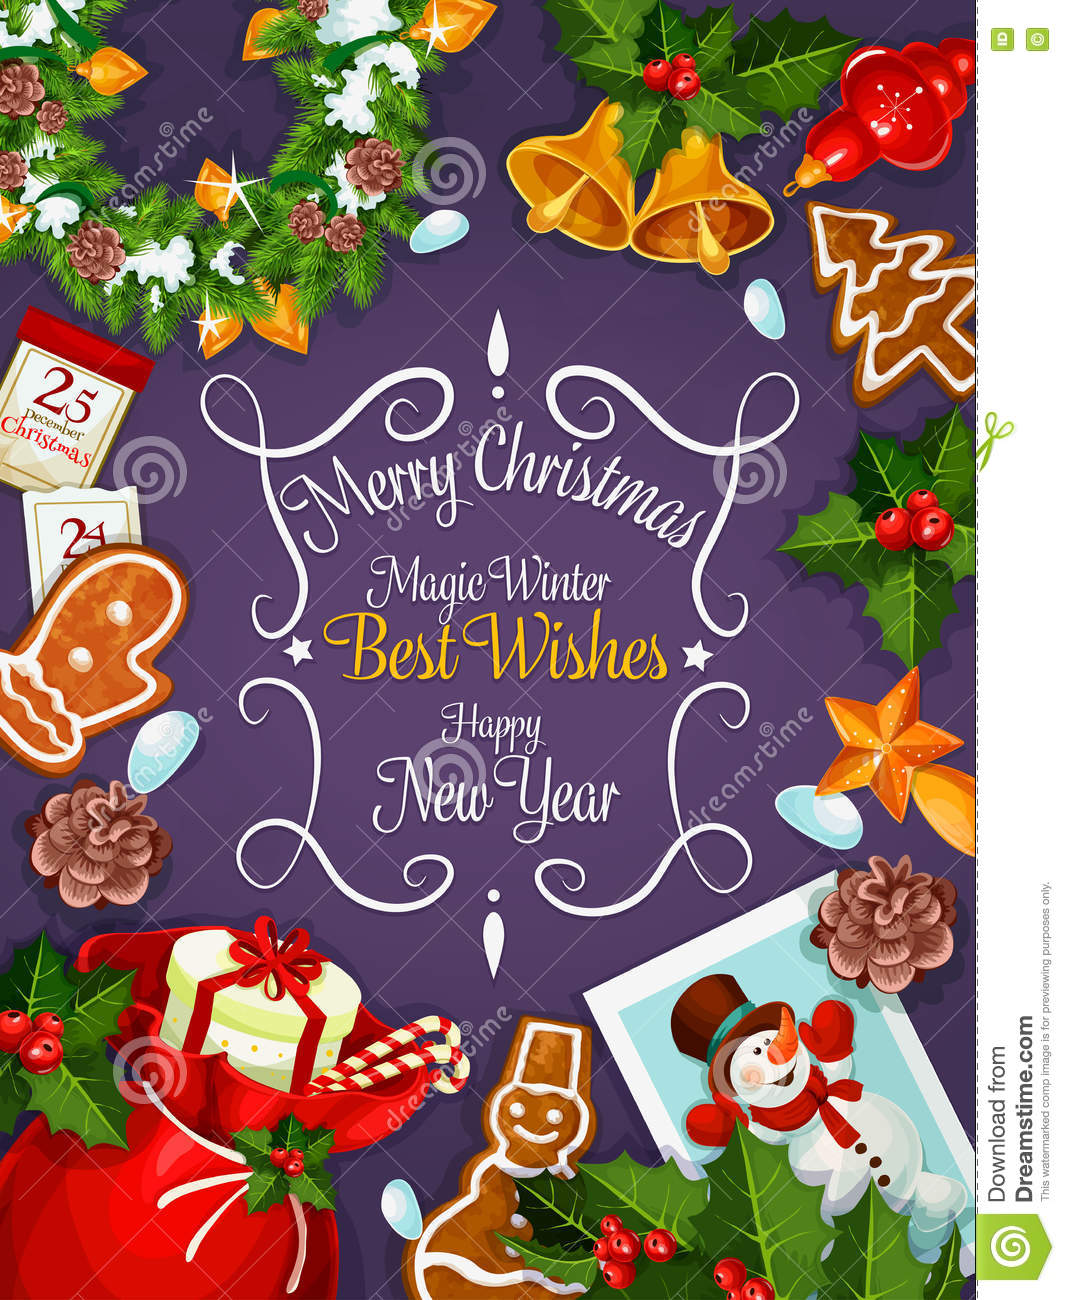 Merry christmas new year wishes card poster stock vector merry christmas new year wishes card poster m4hsunfo